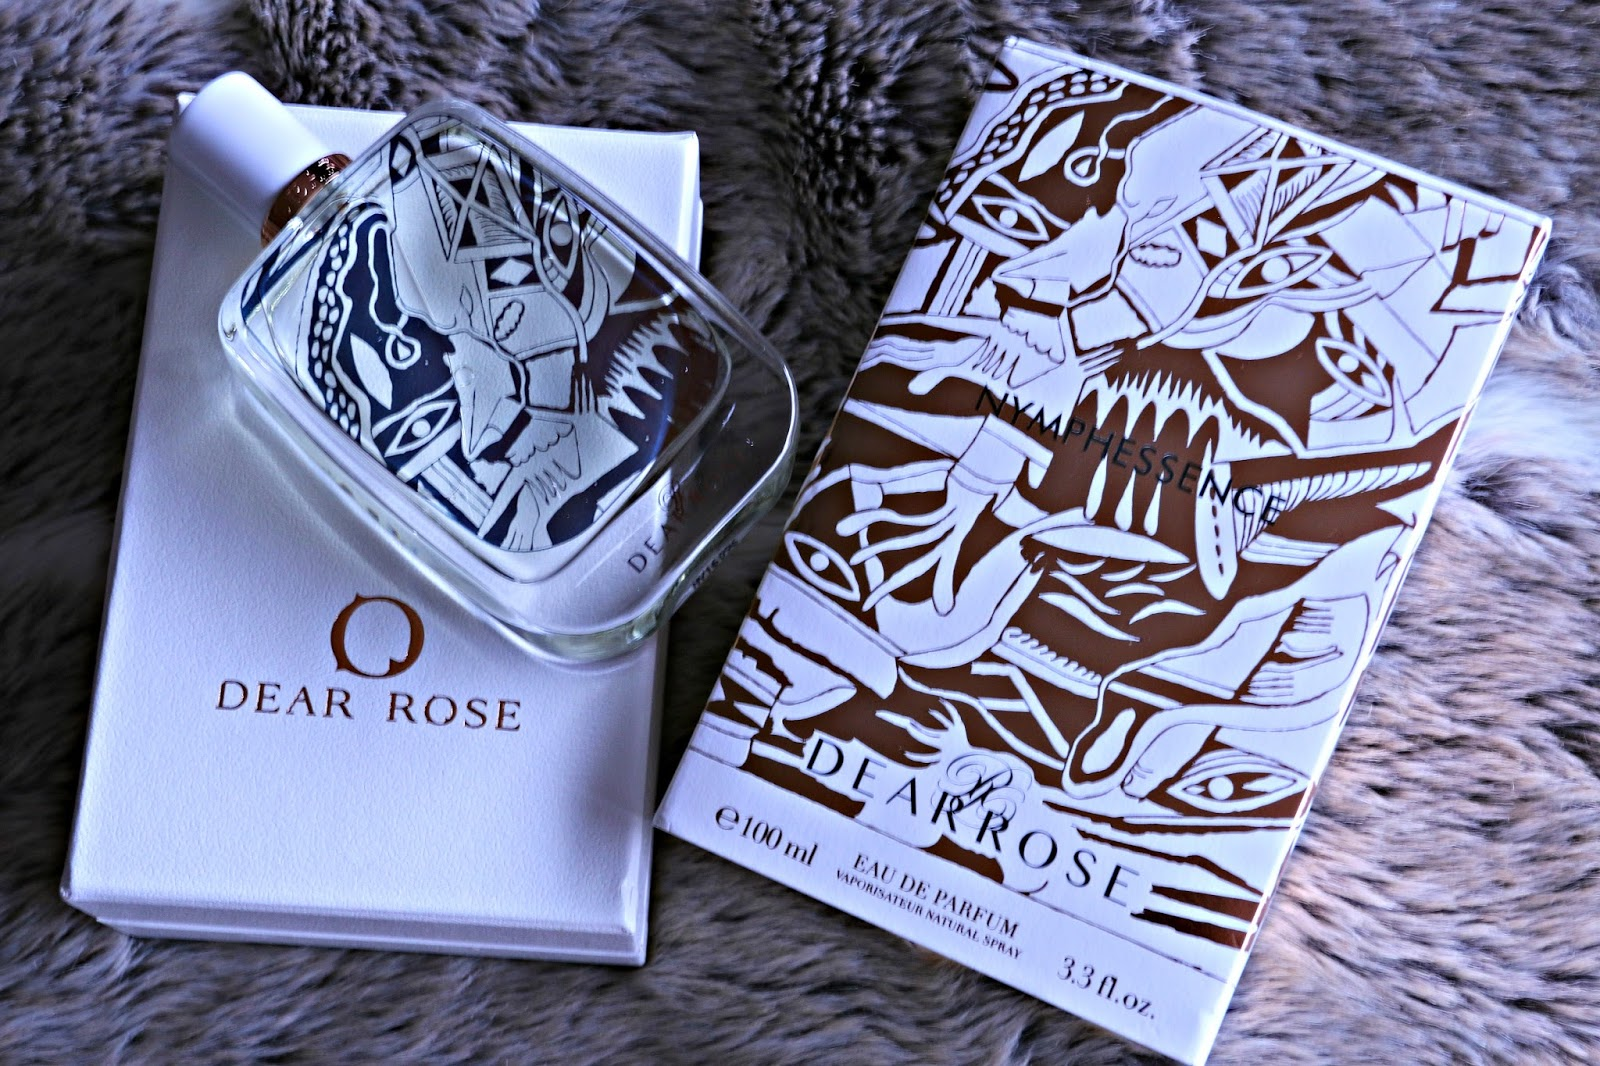 Dear Rose Nymphessence Fragrance Image